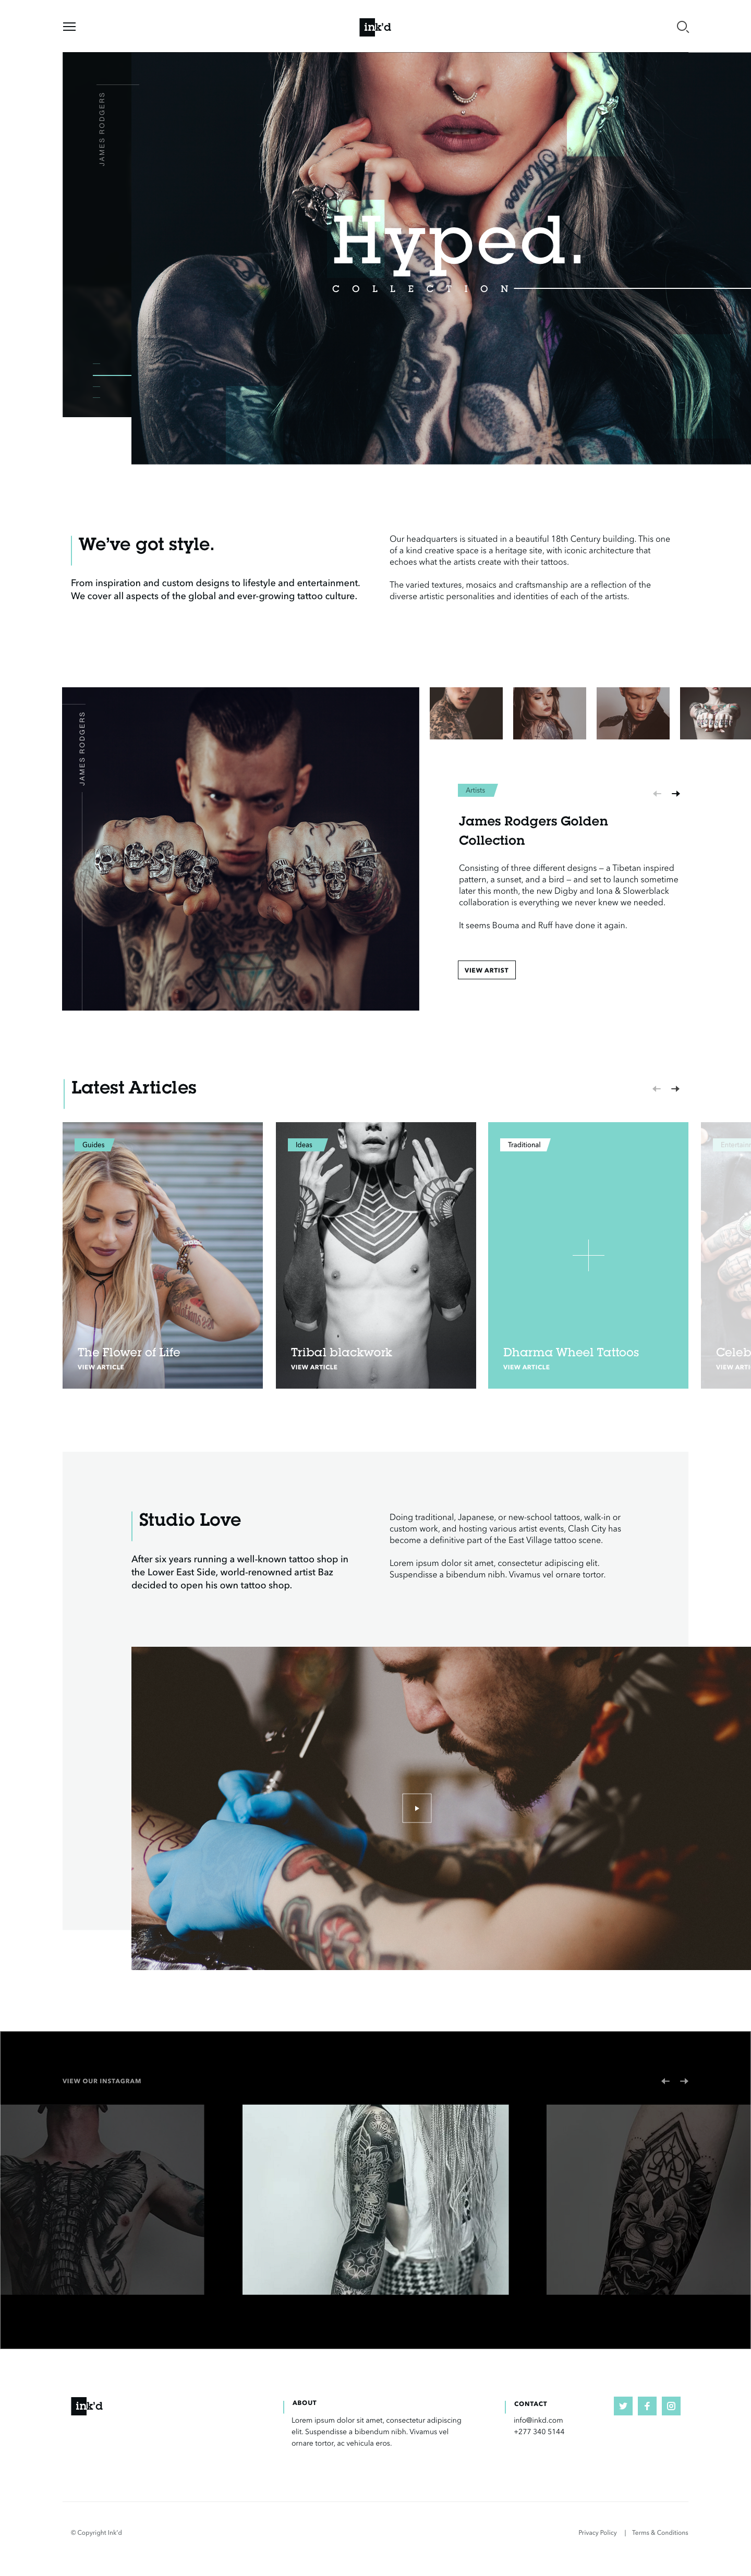 Makereign Tattoo Layout Desktop Web Design Best Landing Page Design Clean Web Design